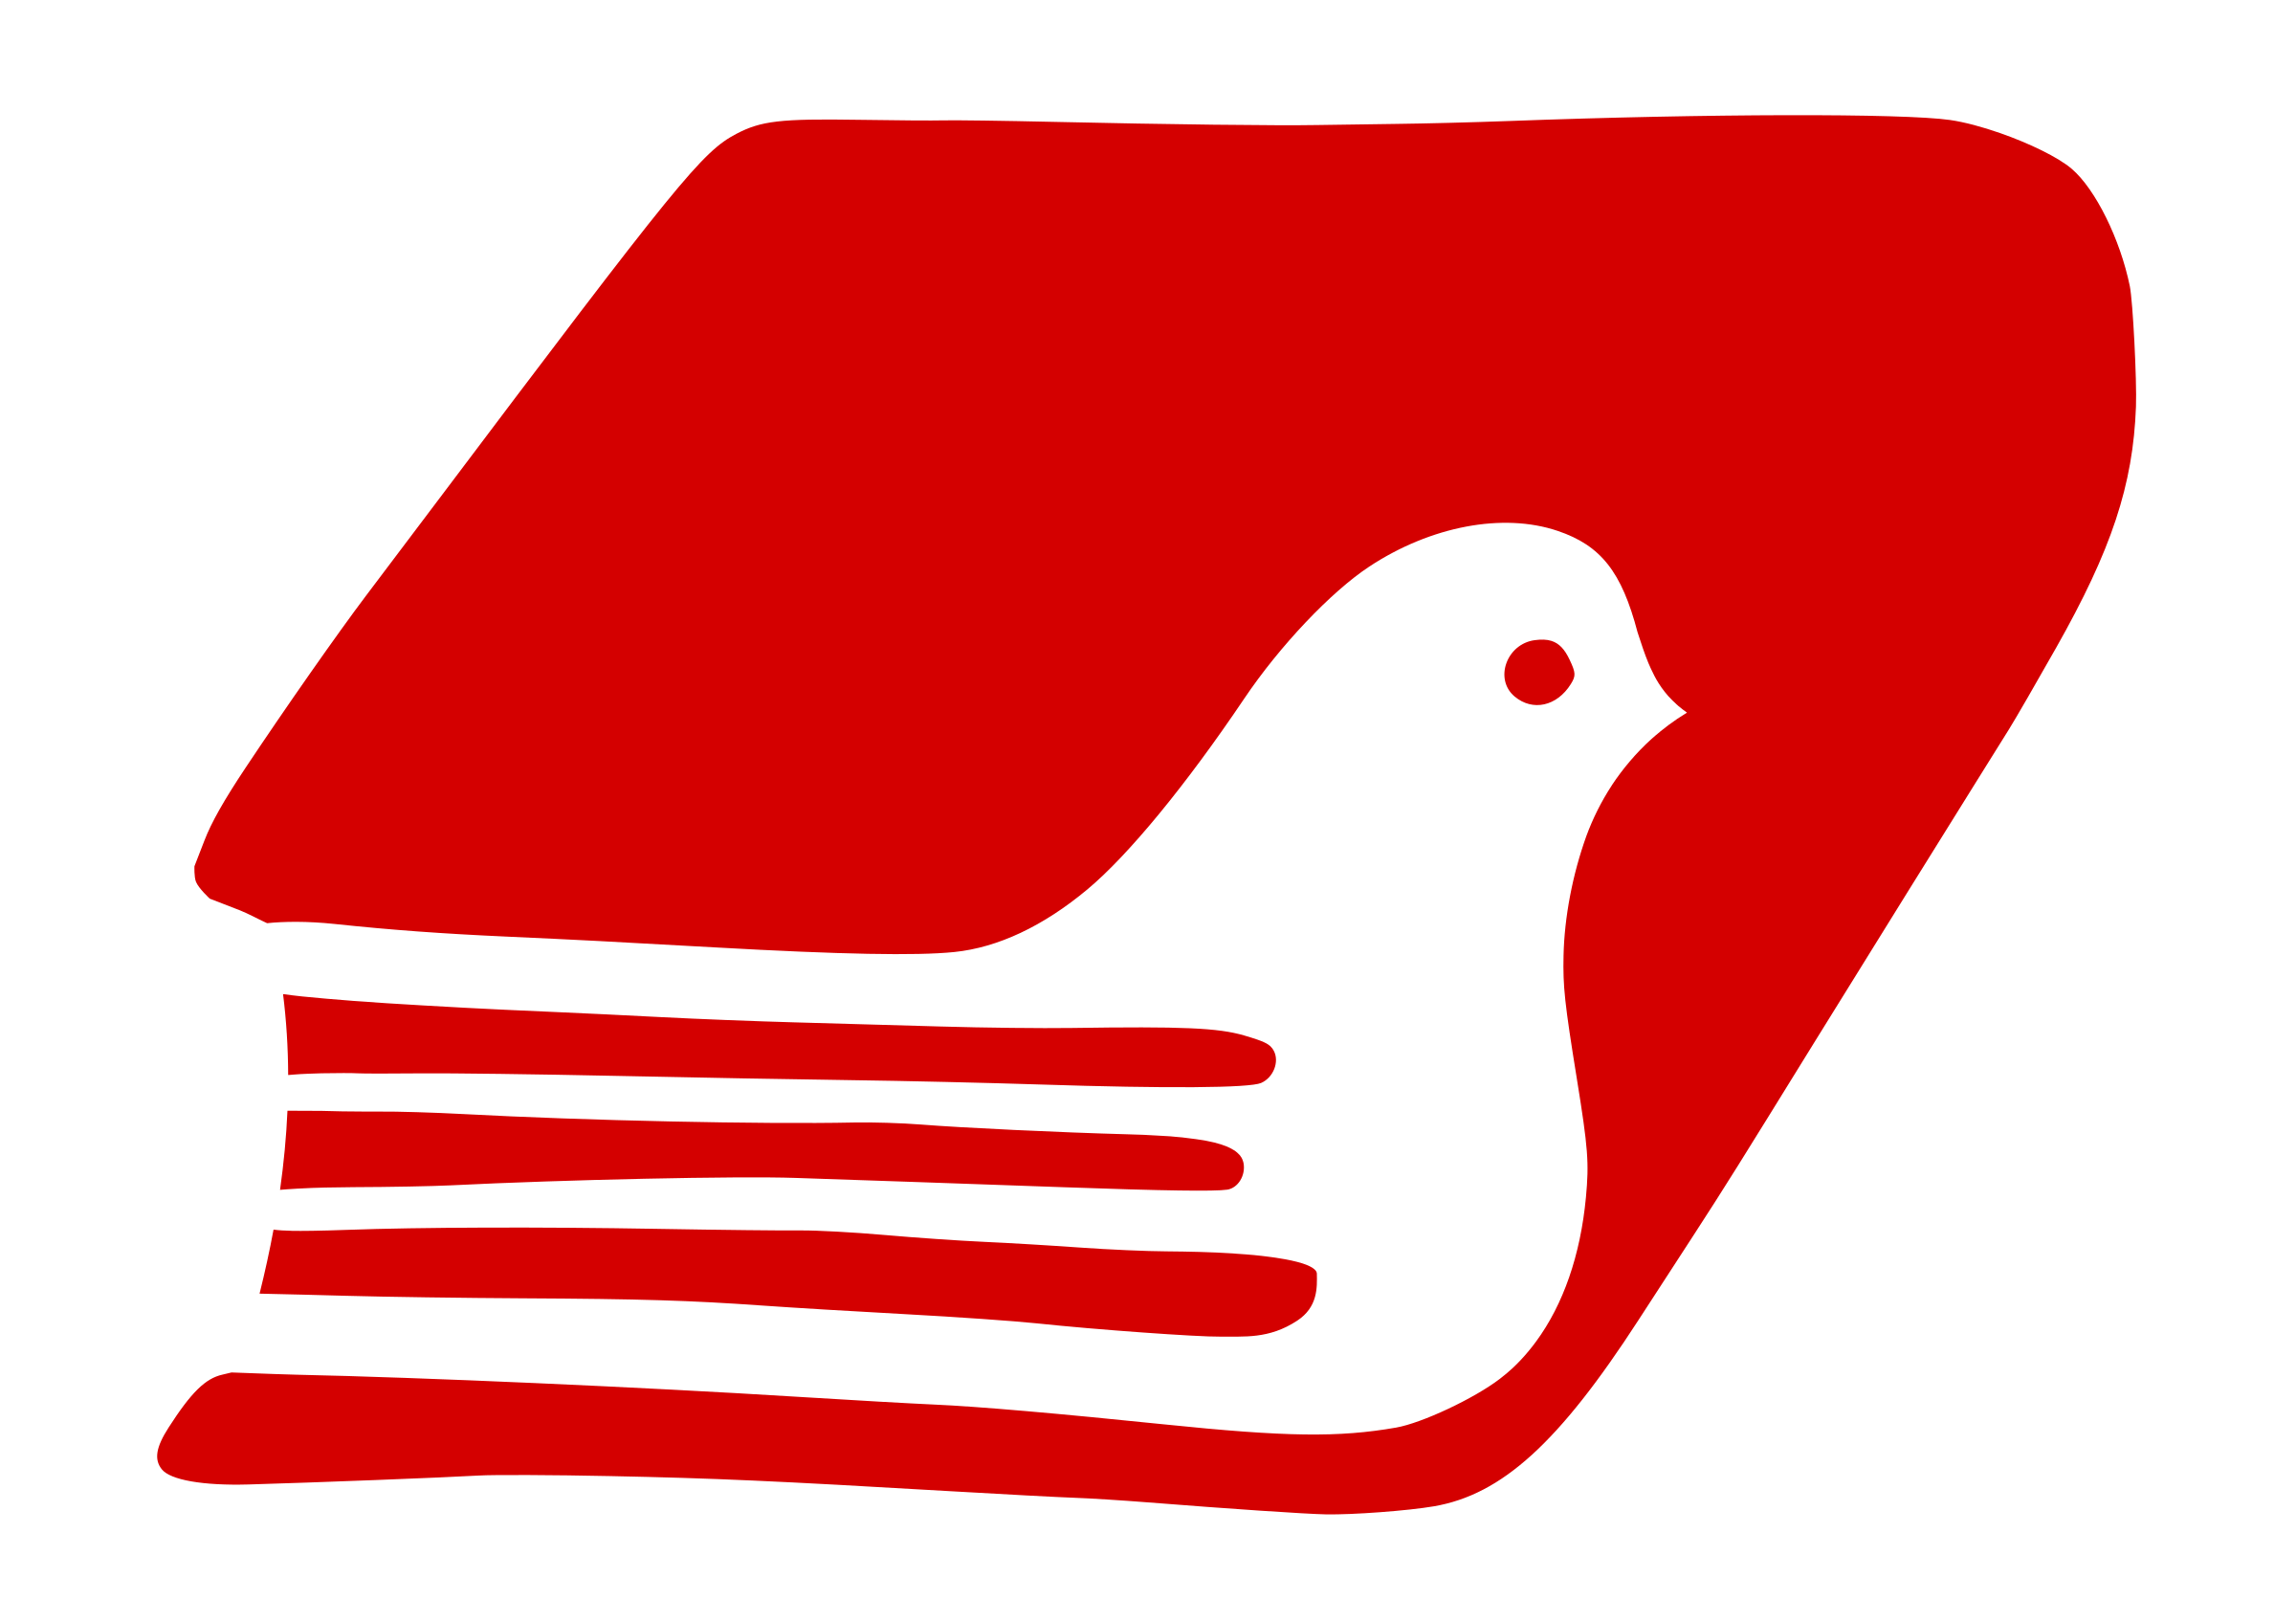 Peace book big image. Dove clipart red